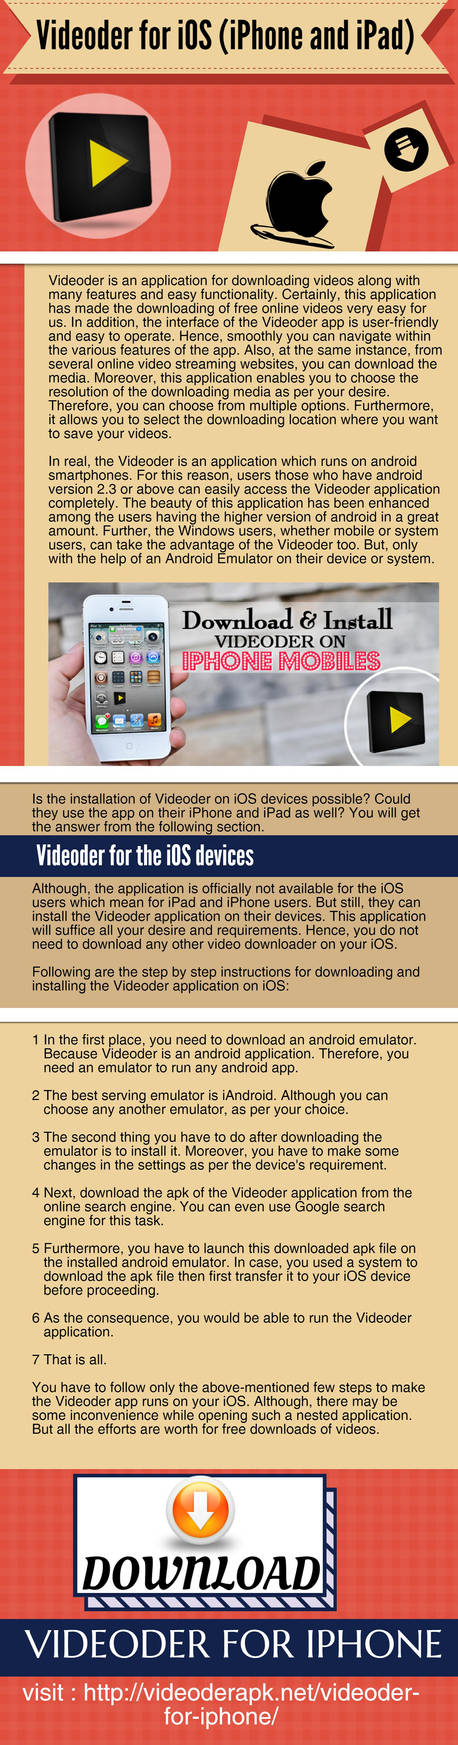 Videoder For IOS (IPhone And IPad) by videoderapk on DeviantArt